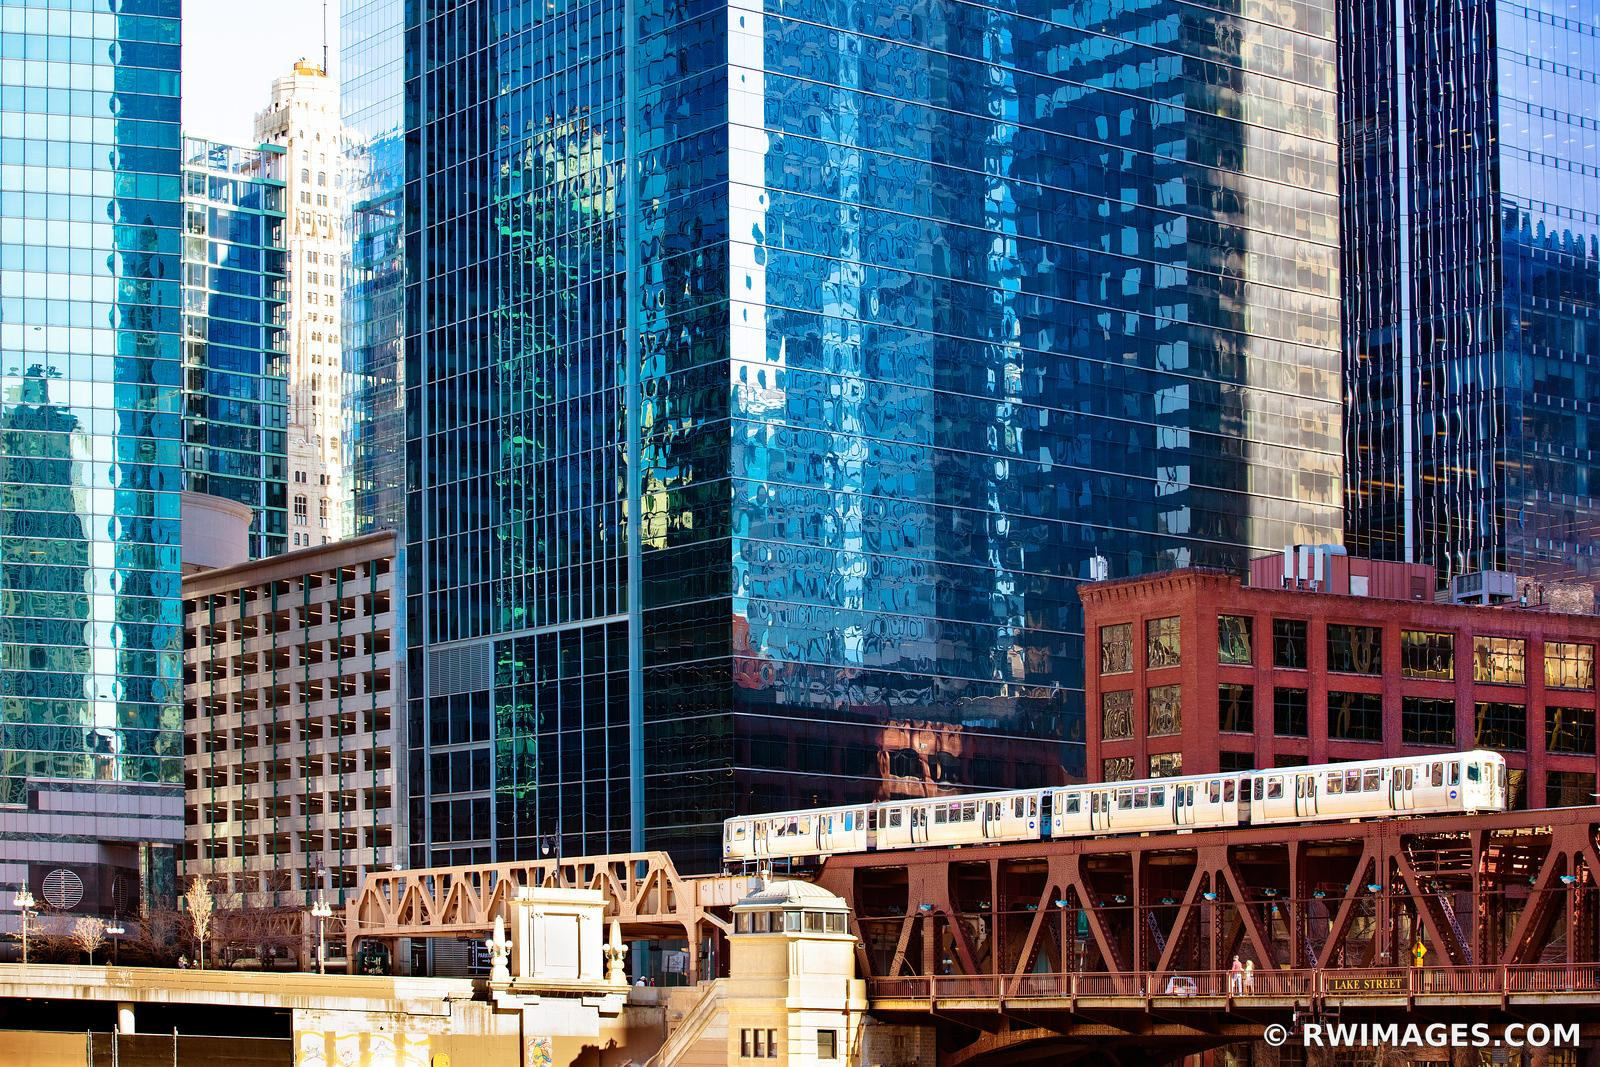 EL TRAIN CHICAGO ELEVATED TRAIN MODERN ARCHITECTURE CHICAGO ILLINOIS COLOR